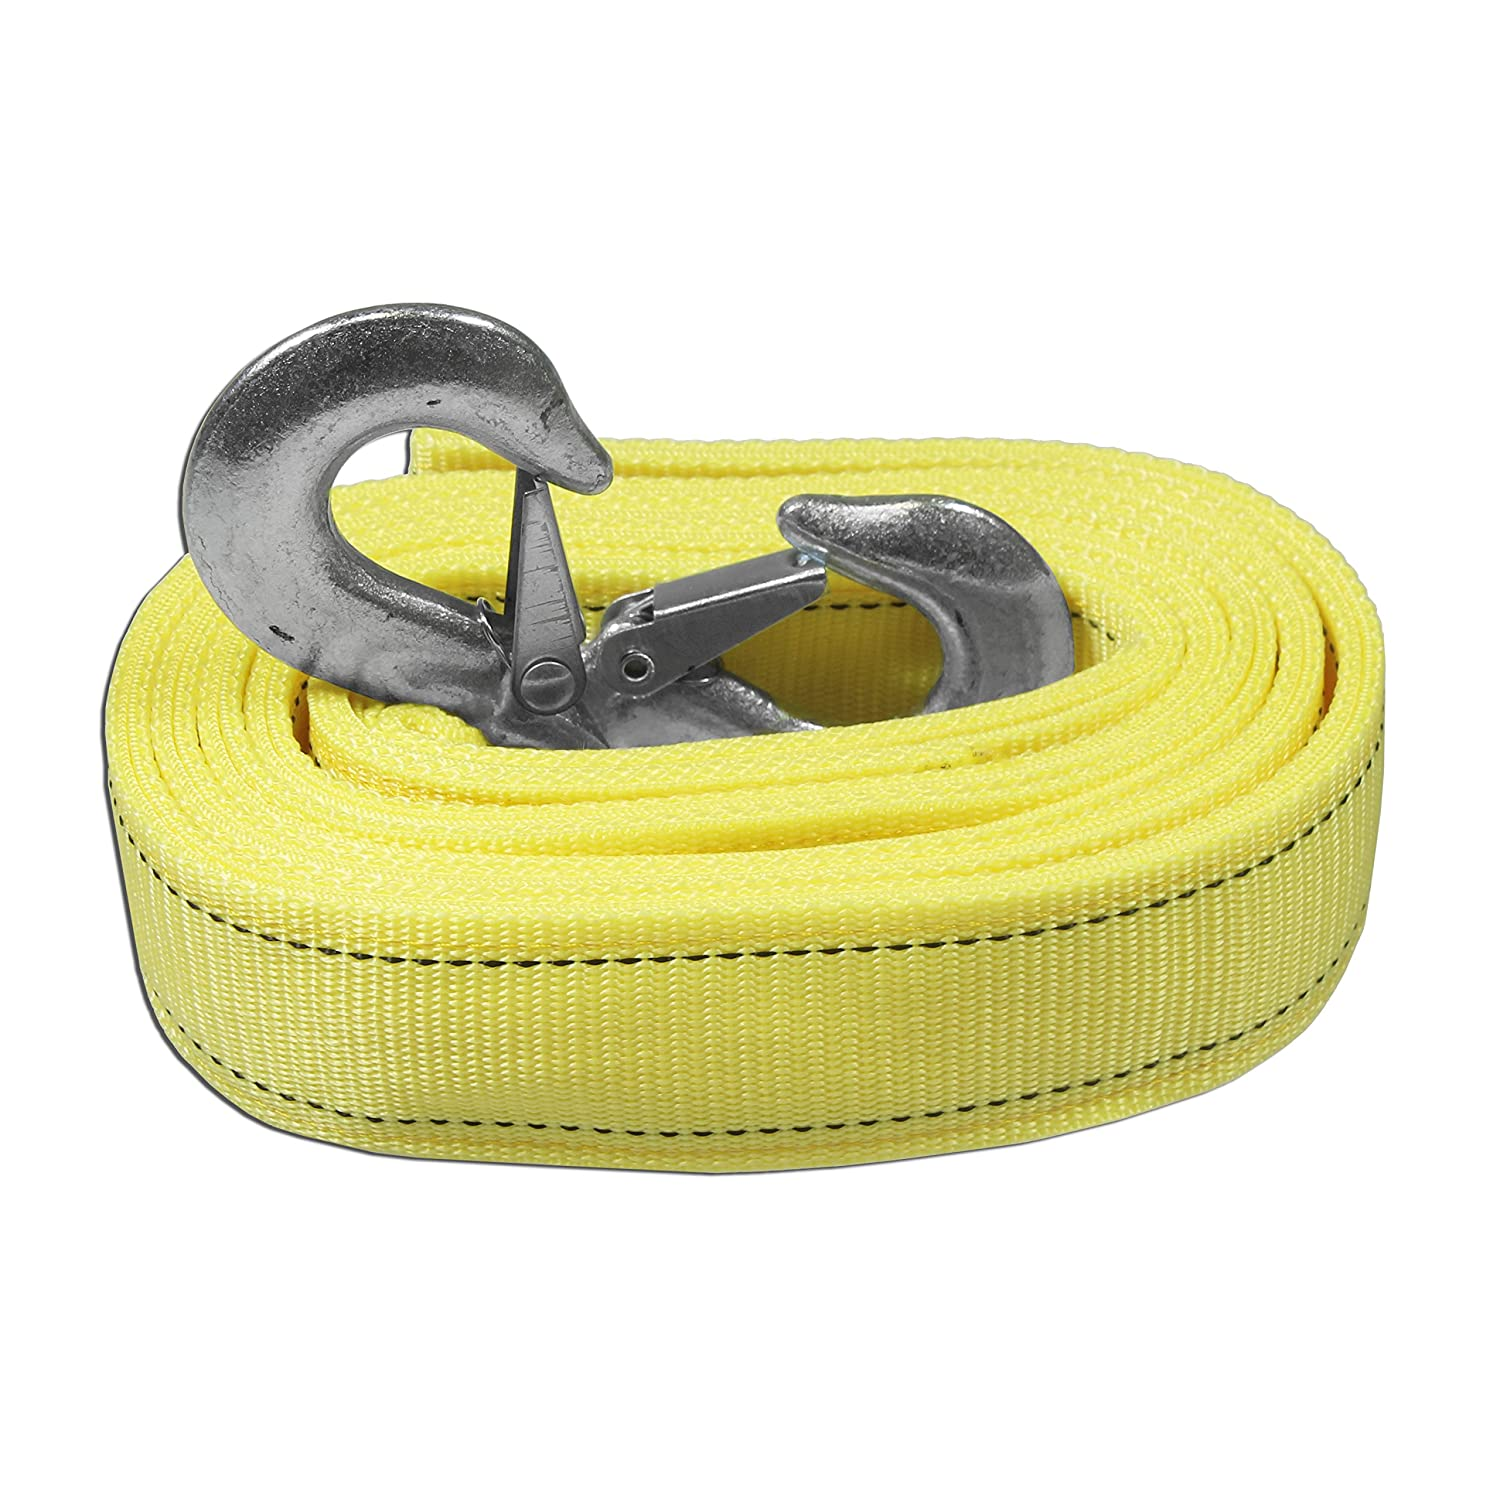 AA Products Heavy Duty 11, 000lbs Tow Straps 2 Safety J Hooks - Length (2' X 13 ft) 000lbs Tow Straps 2 Safety J Hooks - Length (2 X 13 ft) AA-Racks